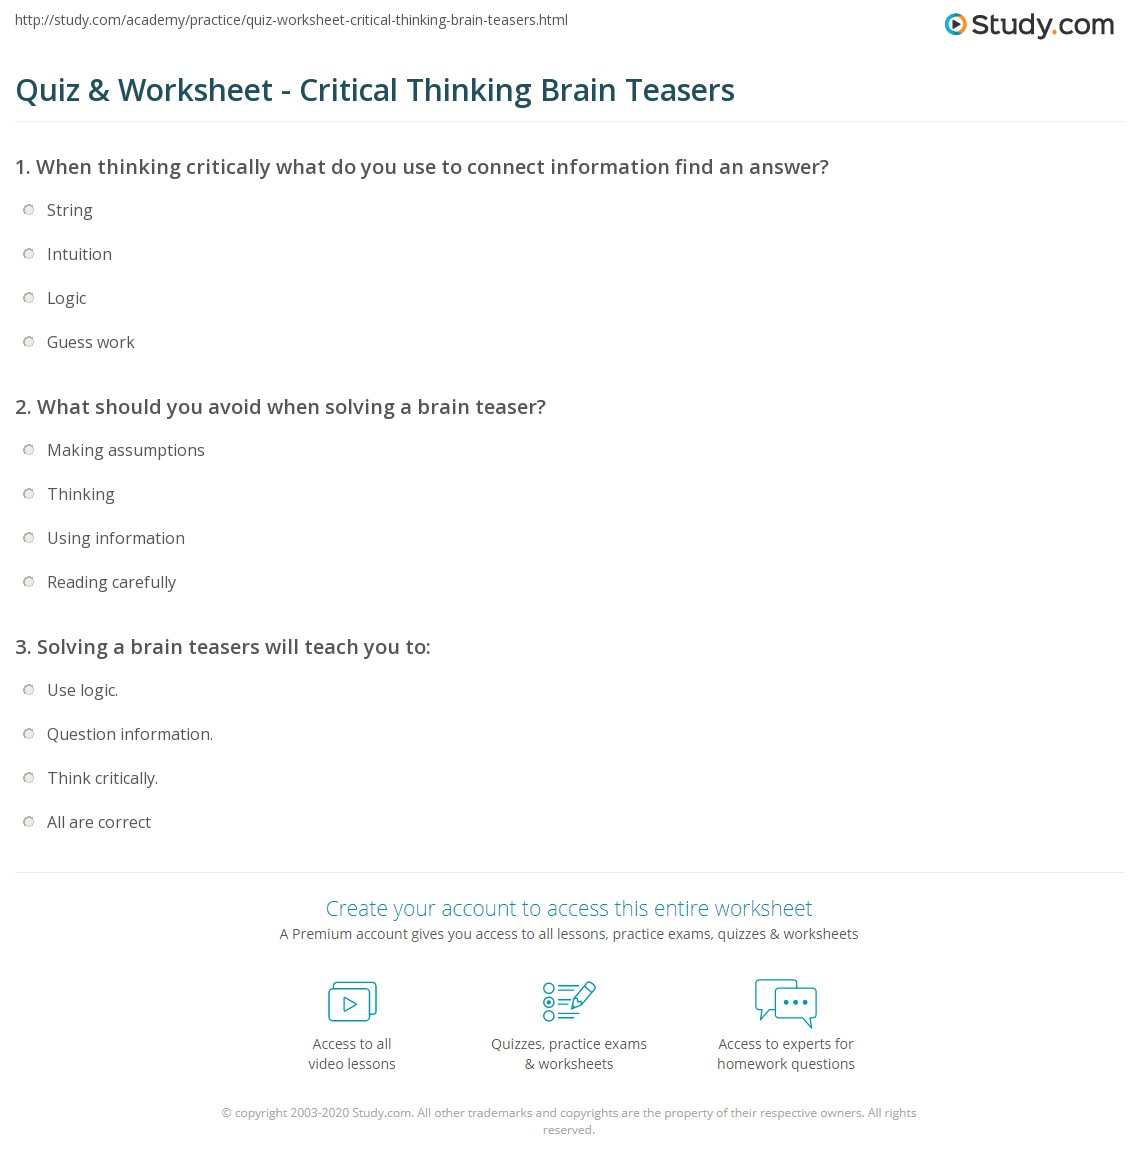 worksheet Brain Teaser Answers Worksheets quiz worksheet critical thinking brain teasers study com print worksheet